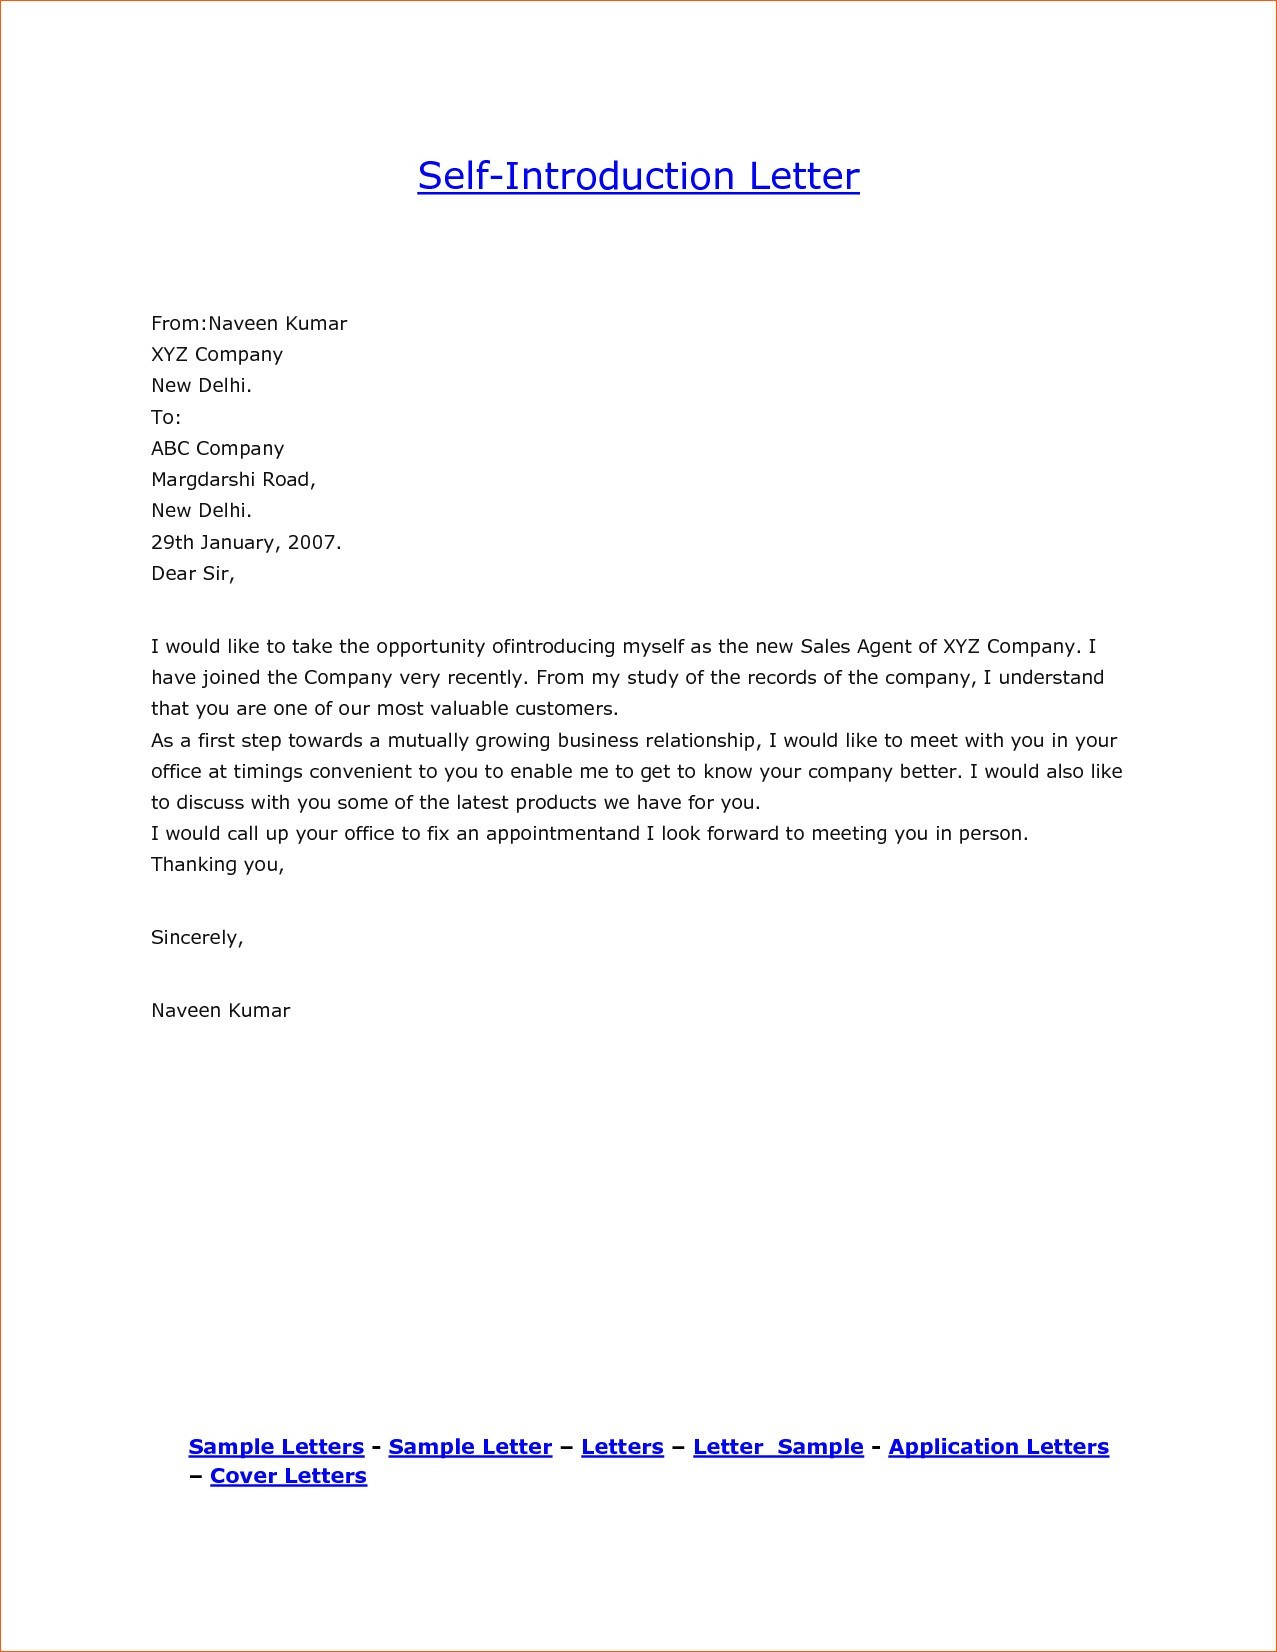 Cleaning Business Introduction Letter Template - Introduction Letter format for Trading Pany New Samples Business